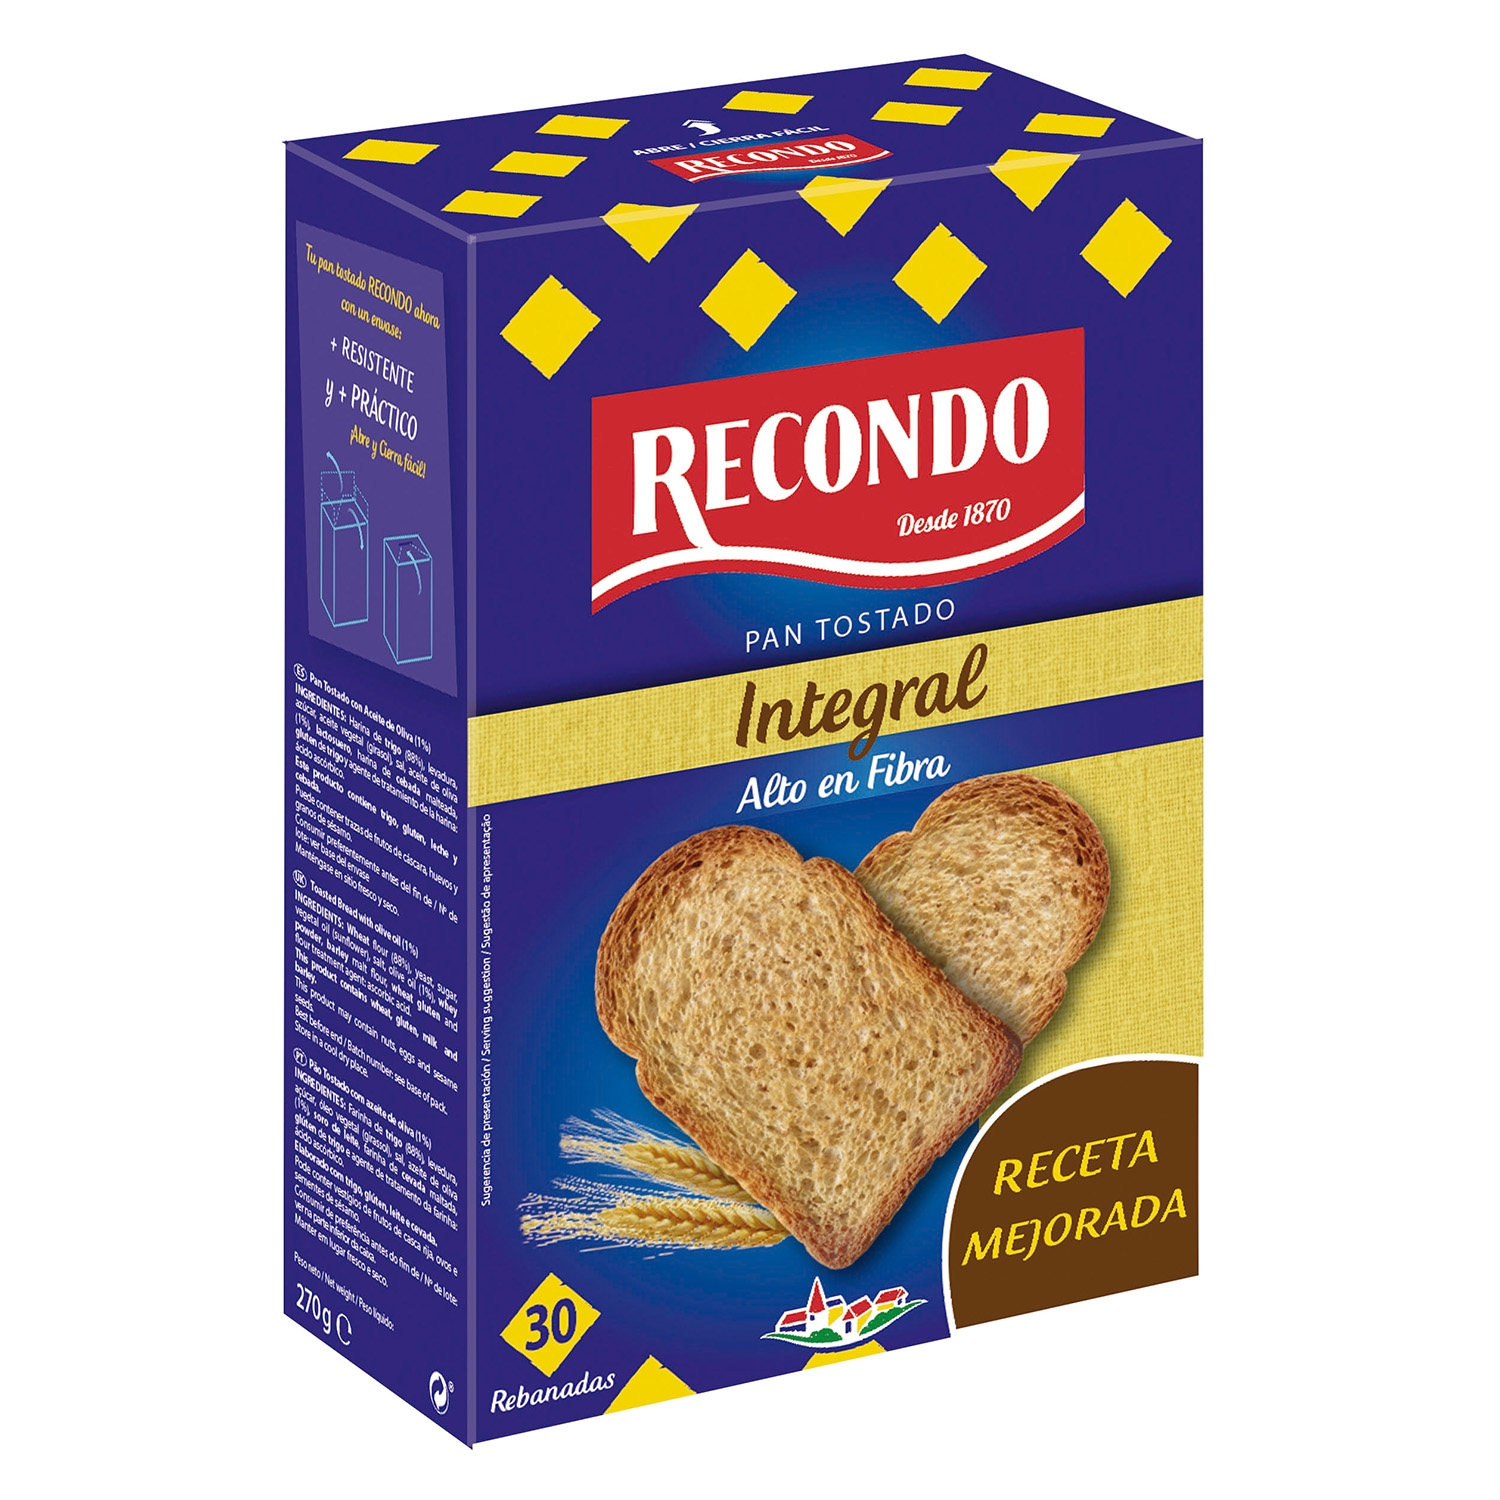 Pan tostado integral Recondo 270 g.